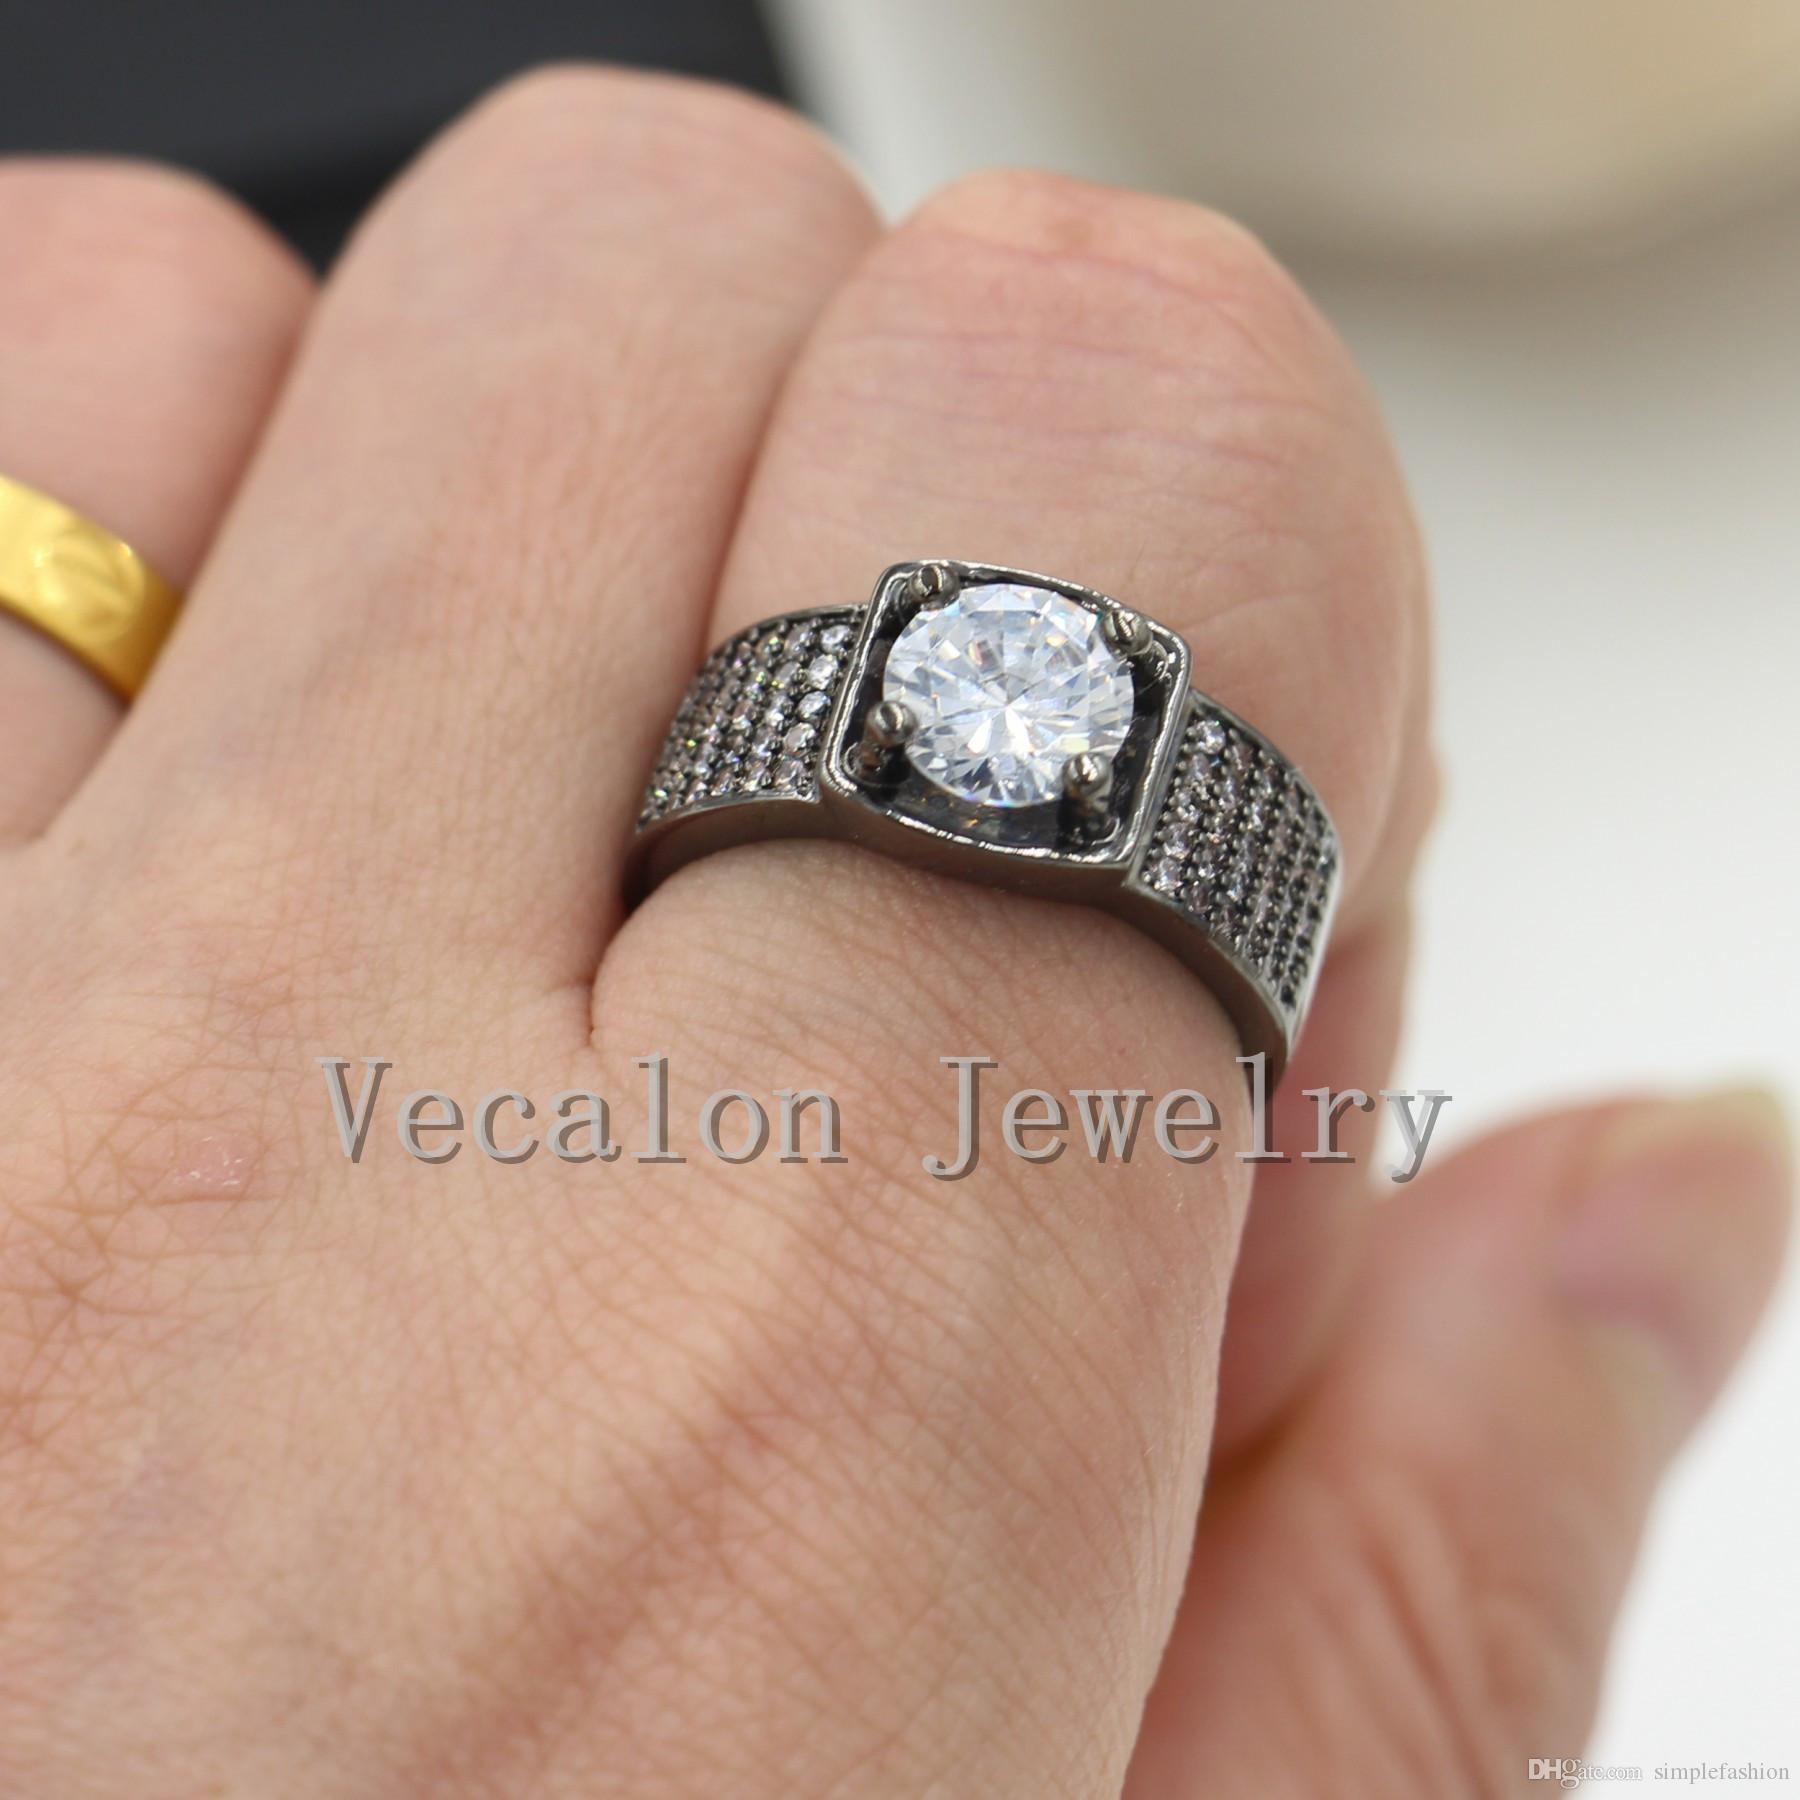 Vecalon Prong Set Solitaire 3ct Simulated Diamond Cz Wedding Band Ring  For Men 10kt Black Gold